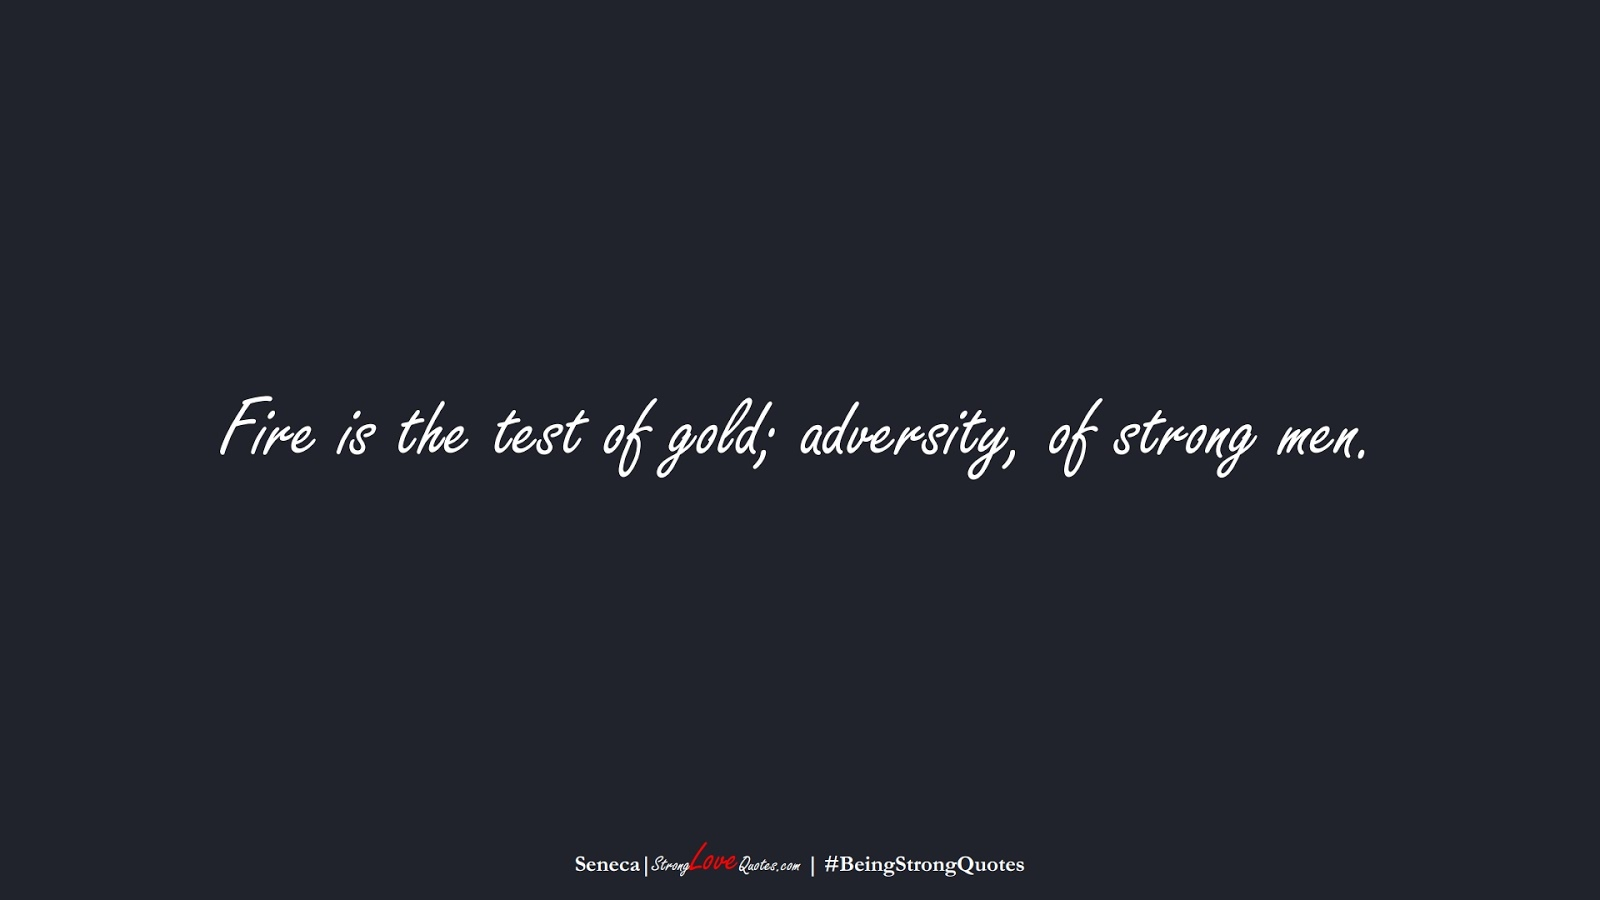 Fire is the test of gold; adversity, of strong men. (Seneca);  #BeingStrongQuotes